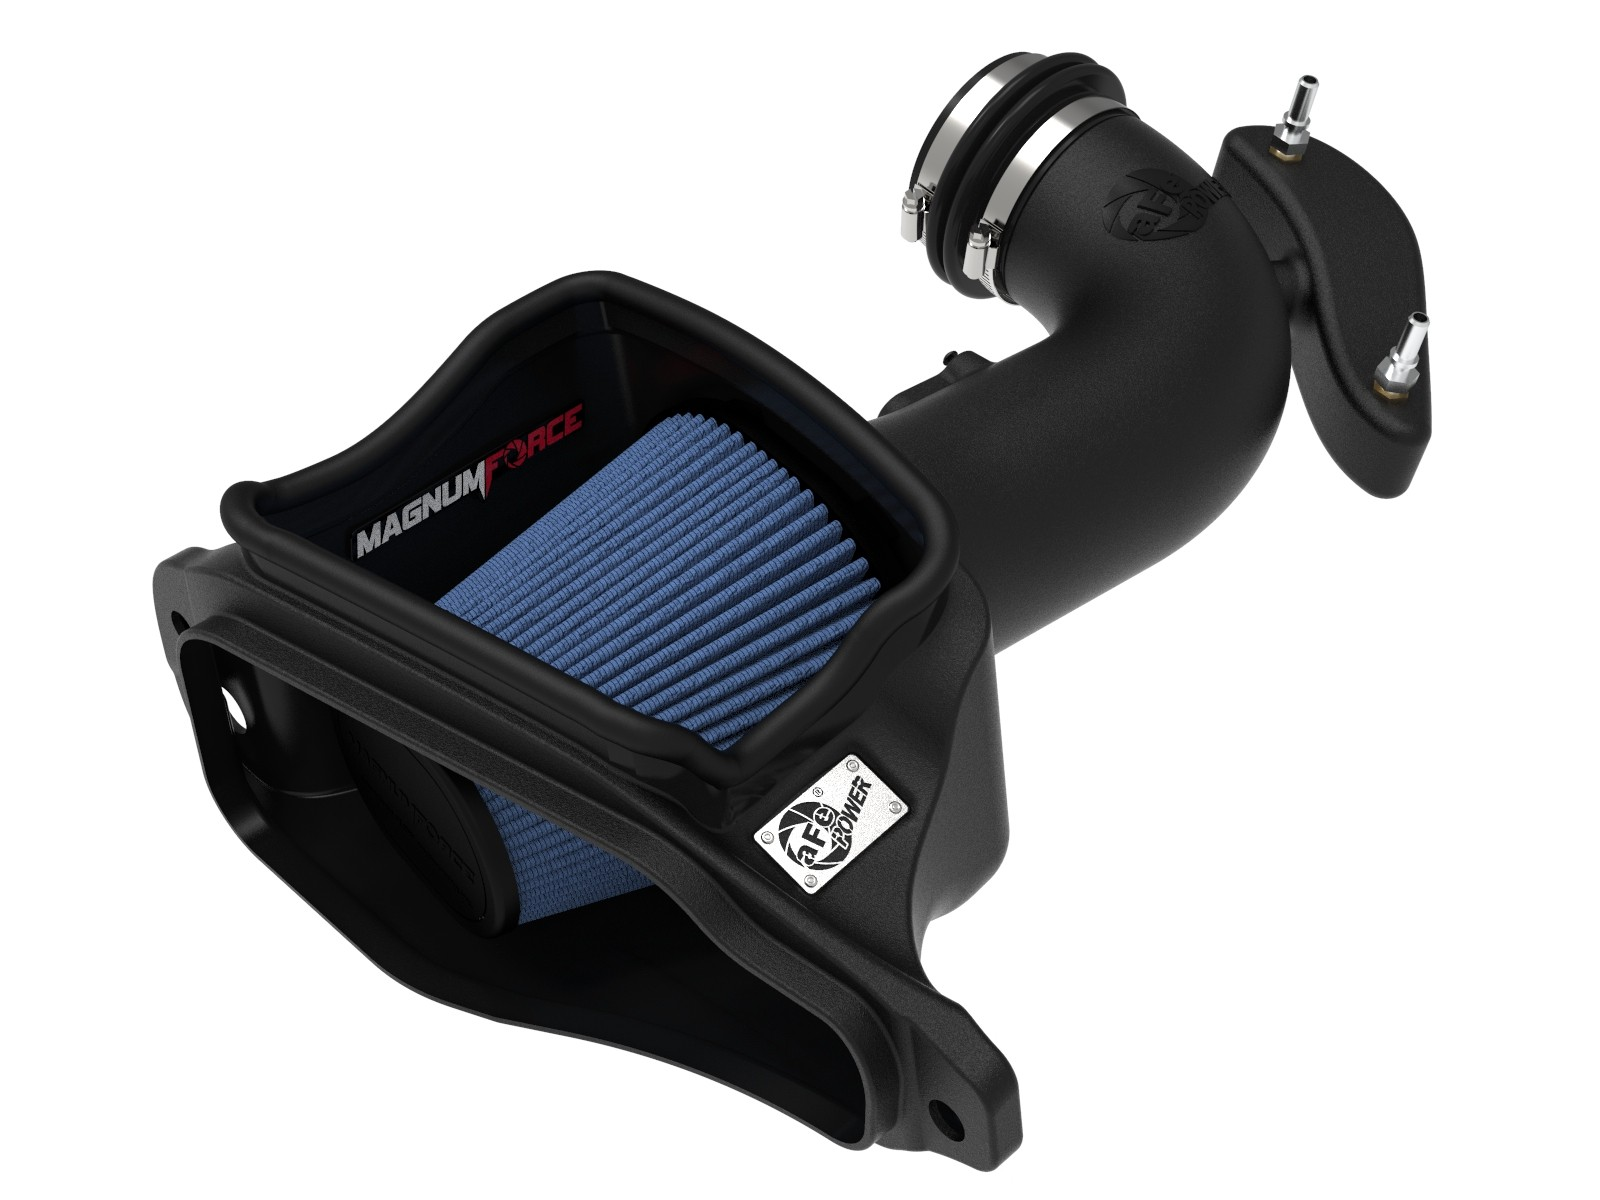 2014-2019 C7 Corvette aFe Power Magnum FORCE Stage-2 Cold Air Intake System w/Pro 5R Filter